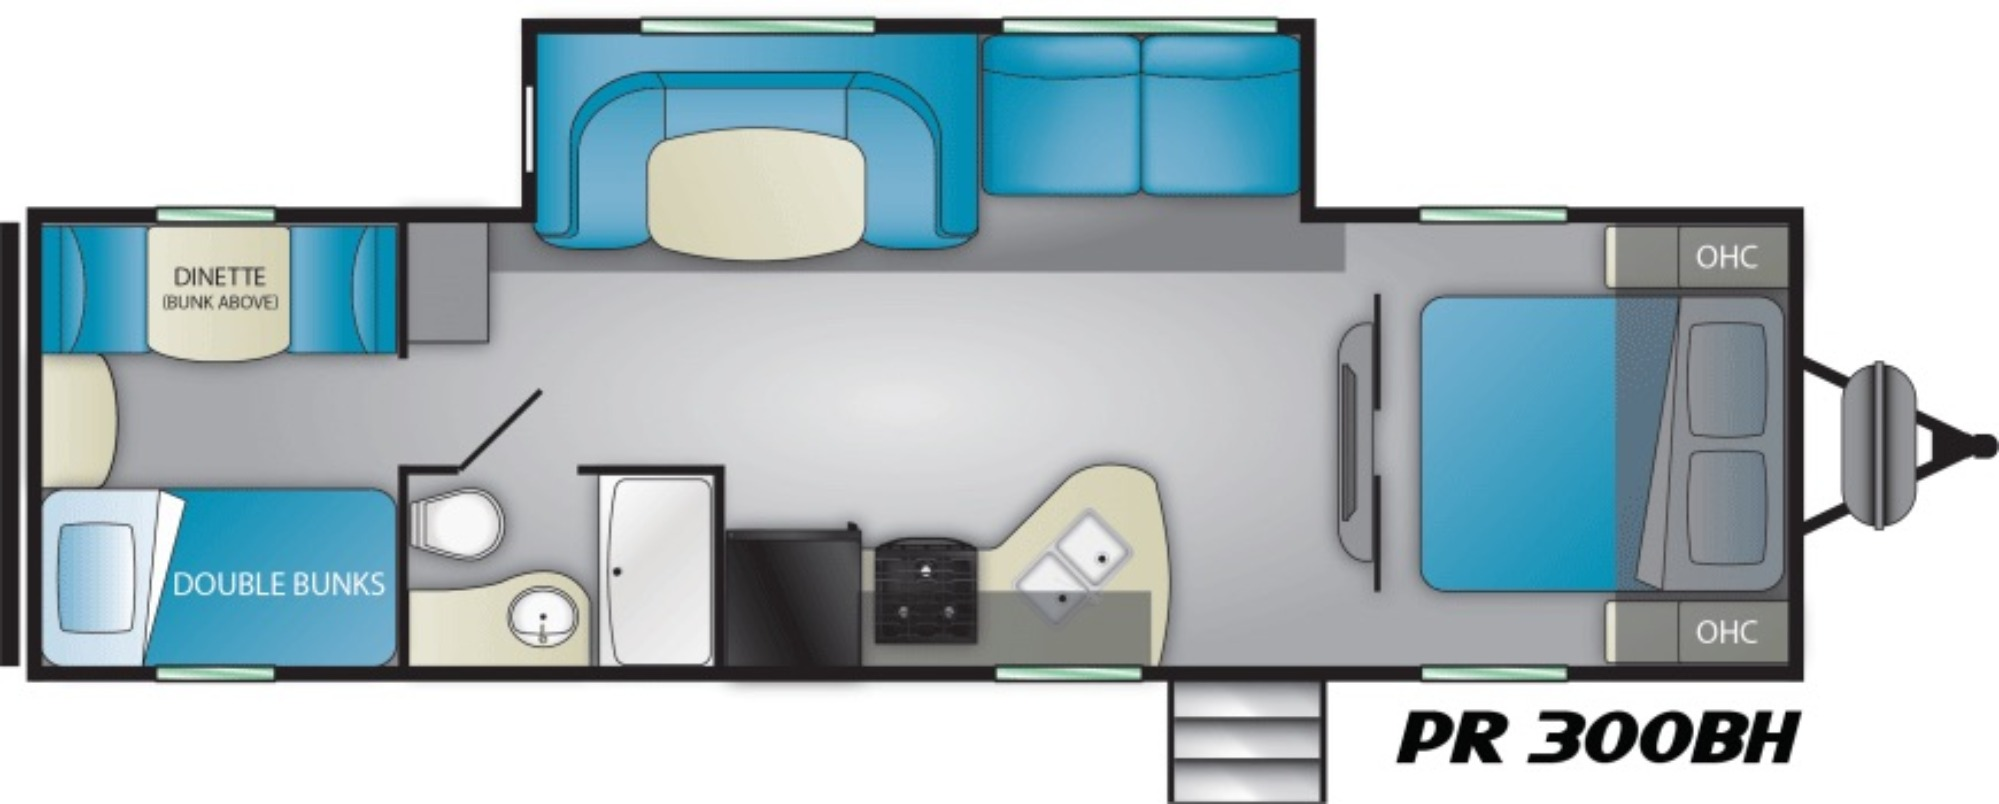 View Floor Plan for 2021 HEARTLAND PROWLER 300BH